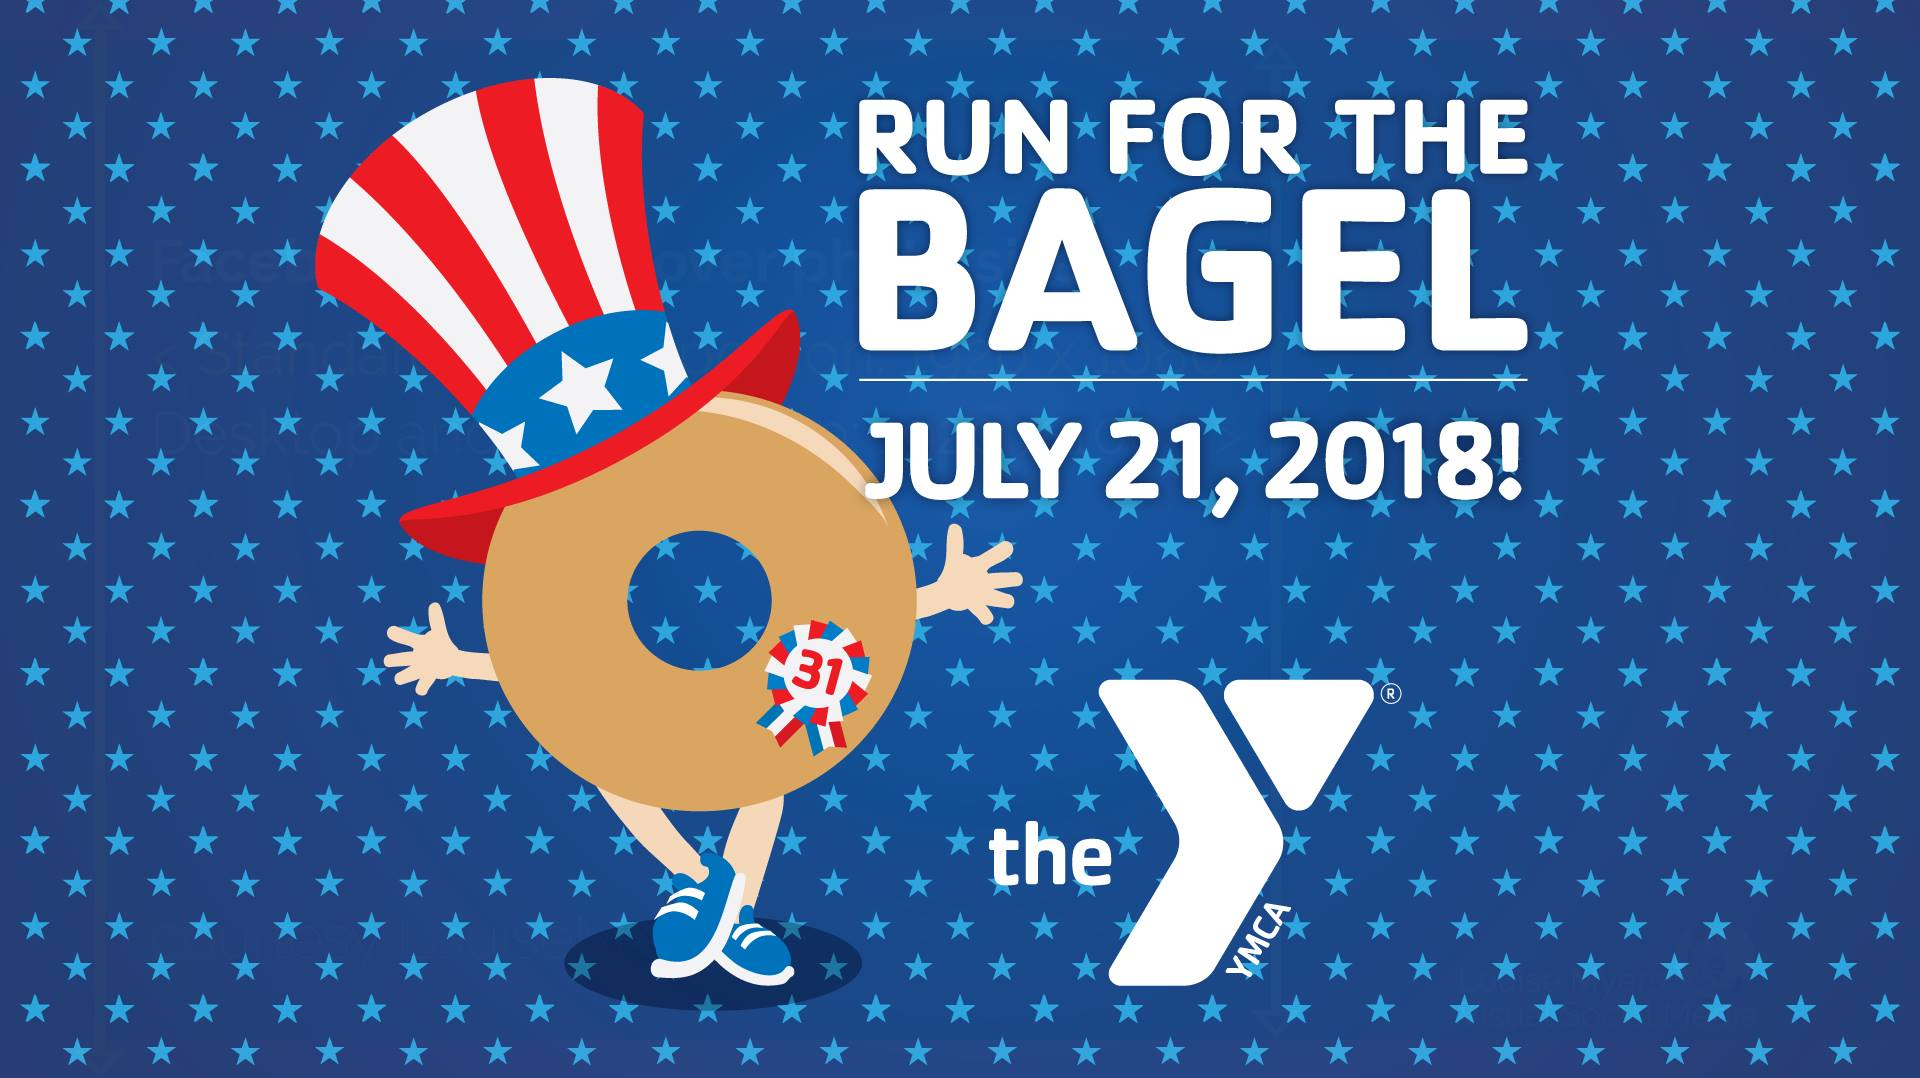 Register to Run for the Bagel